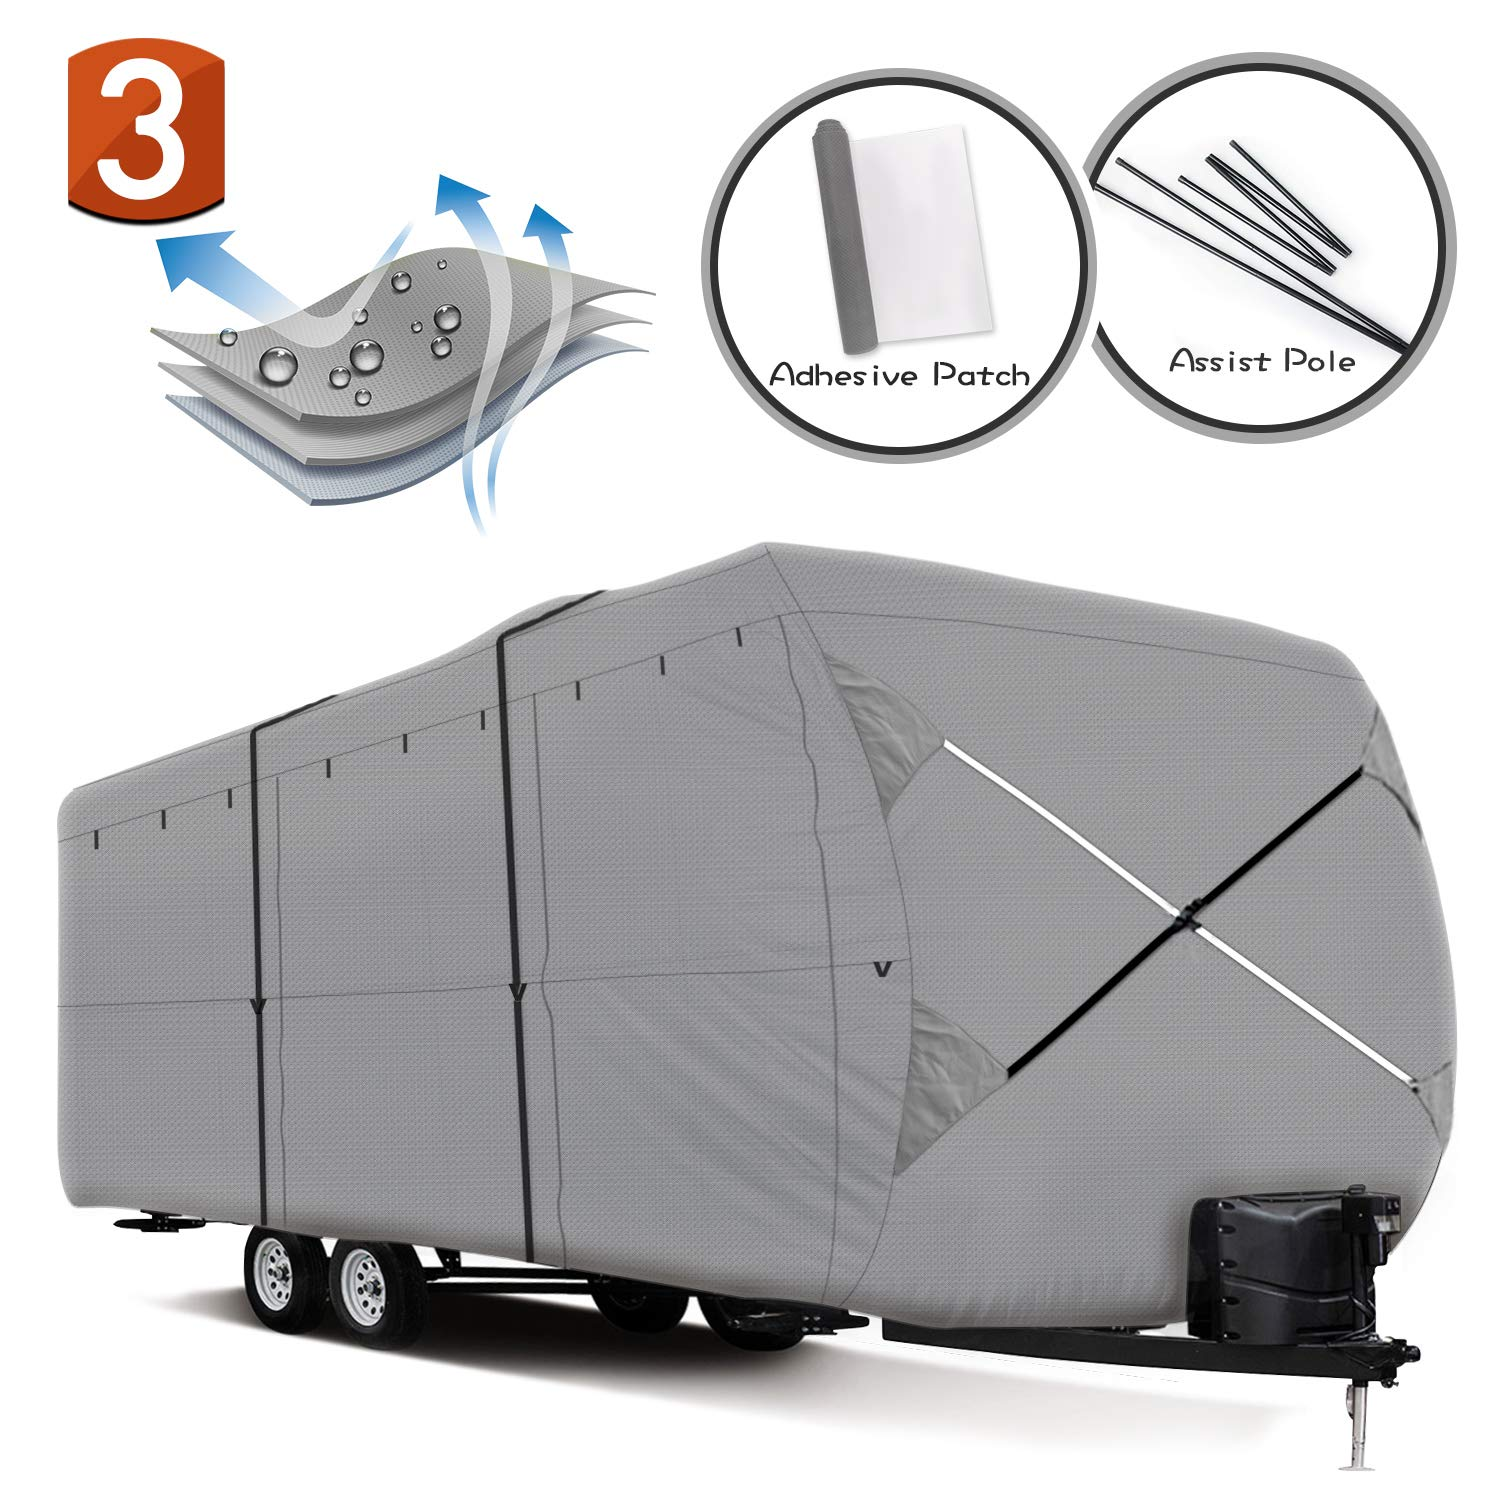 XGEAR Easy Setup Travel Trailer RV Cover Water-Repellent Fabric with Thick 3-ply Top Windproof Buckles & Assist Pole (33'-35')